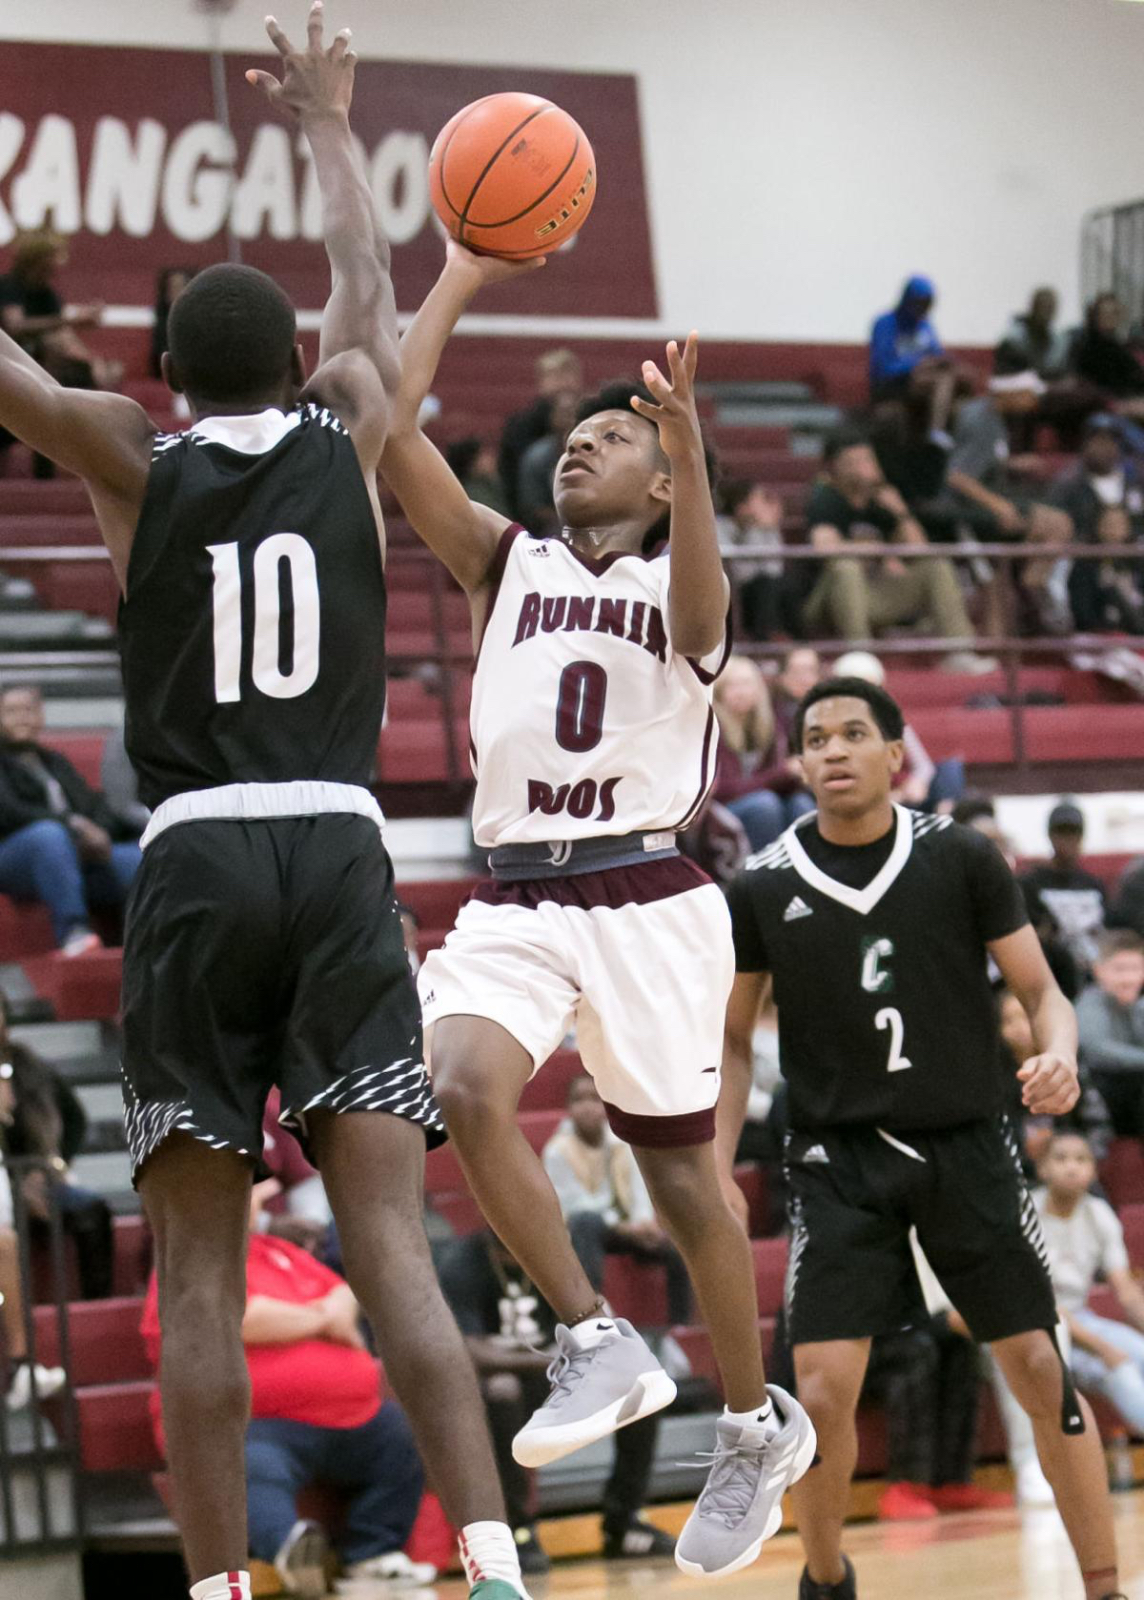 Killeen beats 5A-No. 7 Pflugerville Connally, 66-61 by Clay Whittington